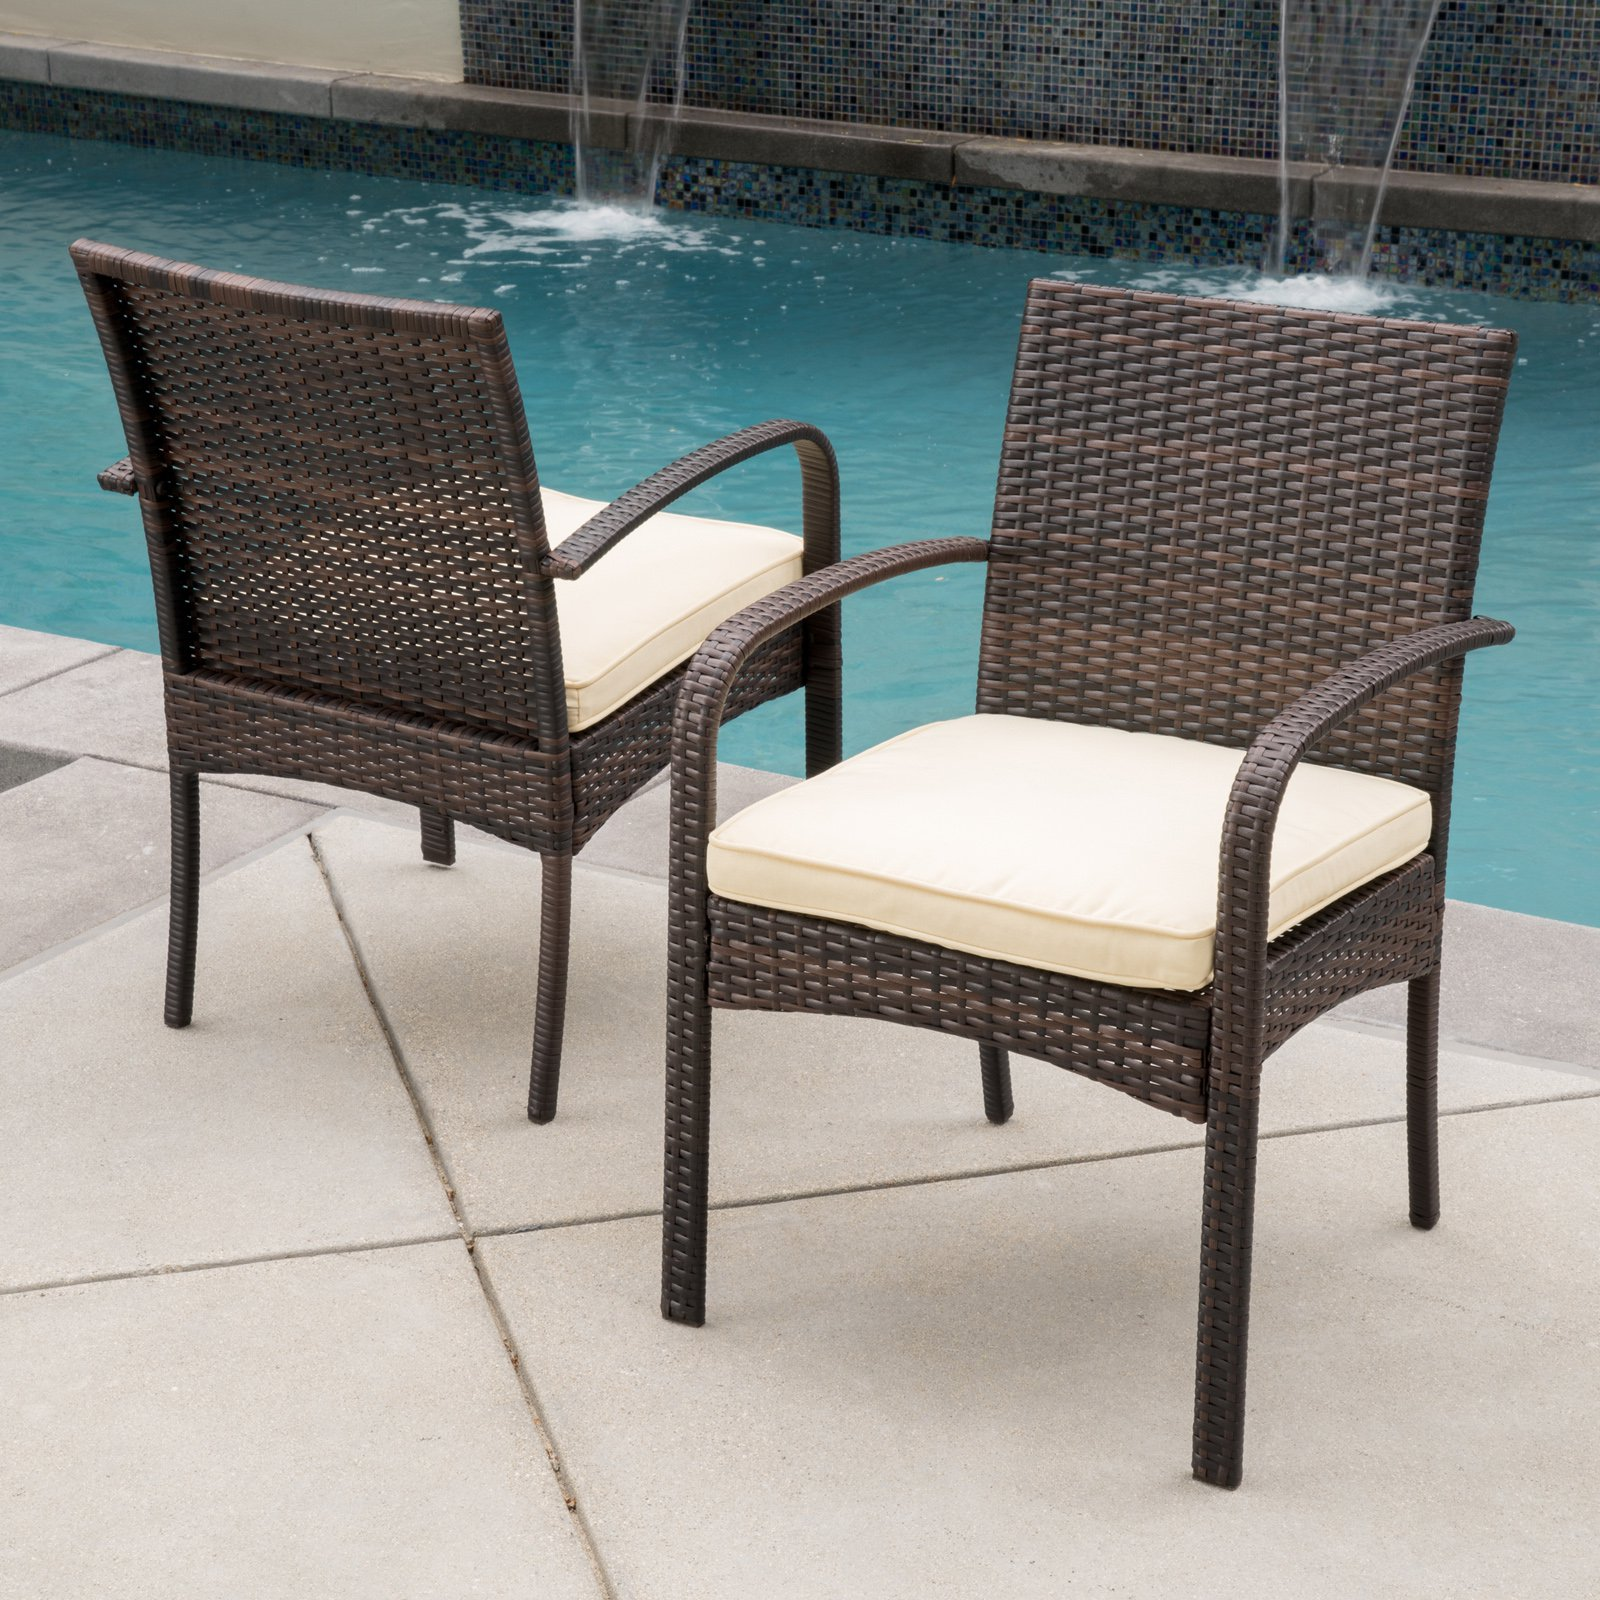 Patio chairs stools for Backyard pool furniture